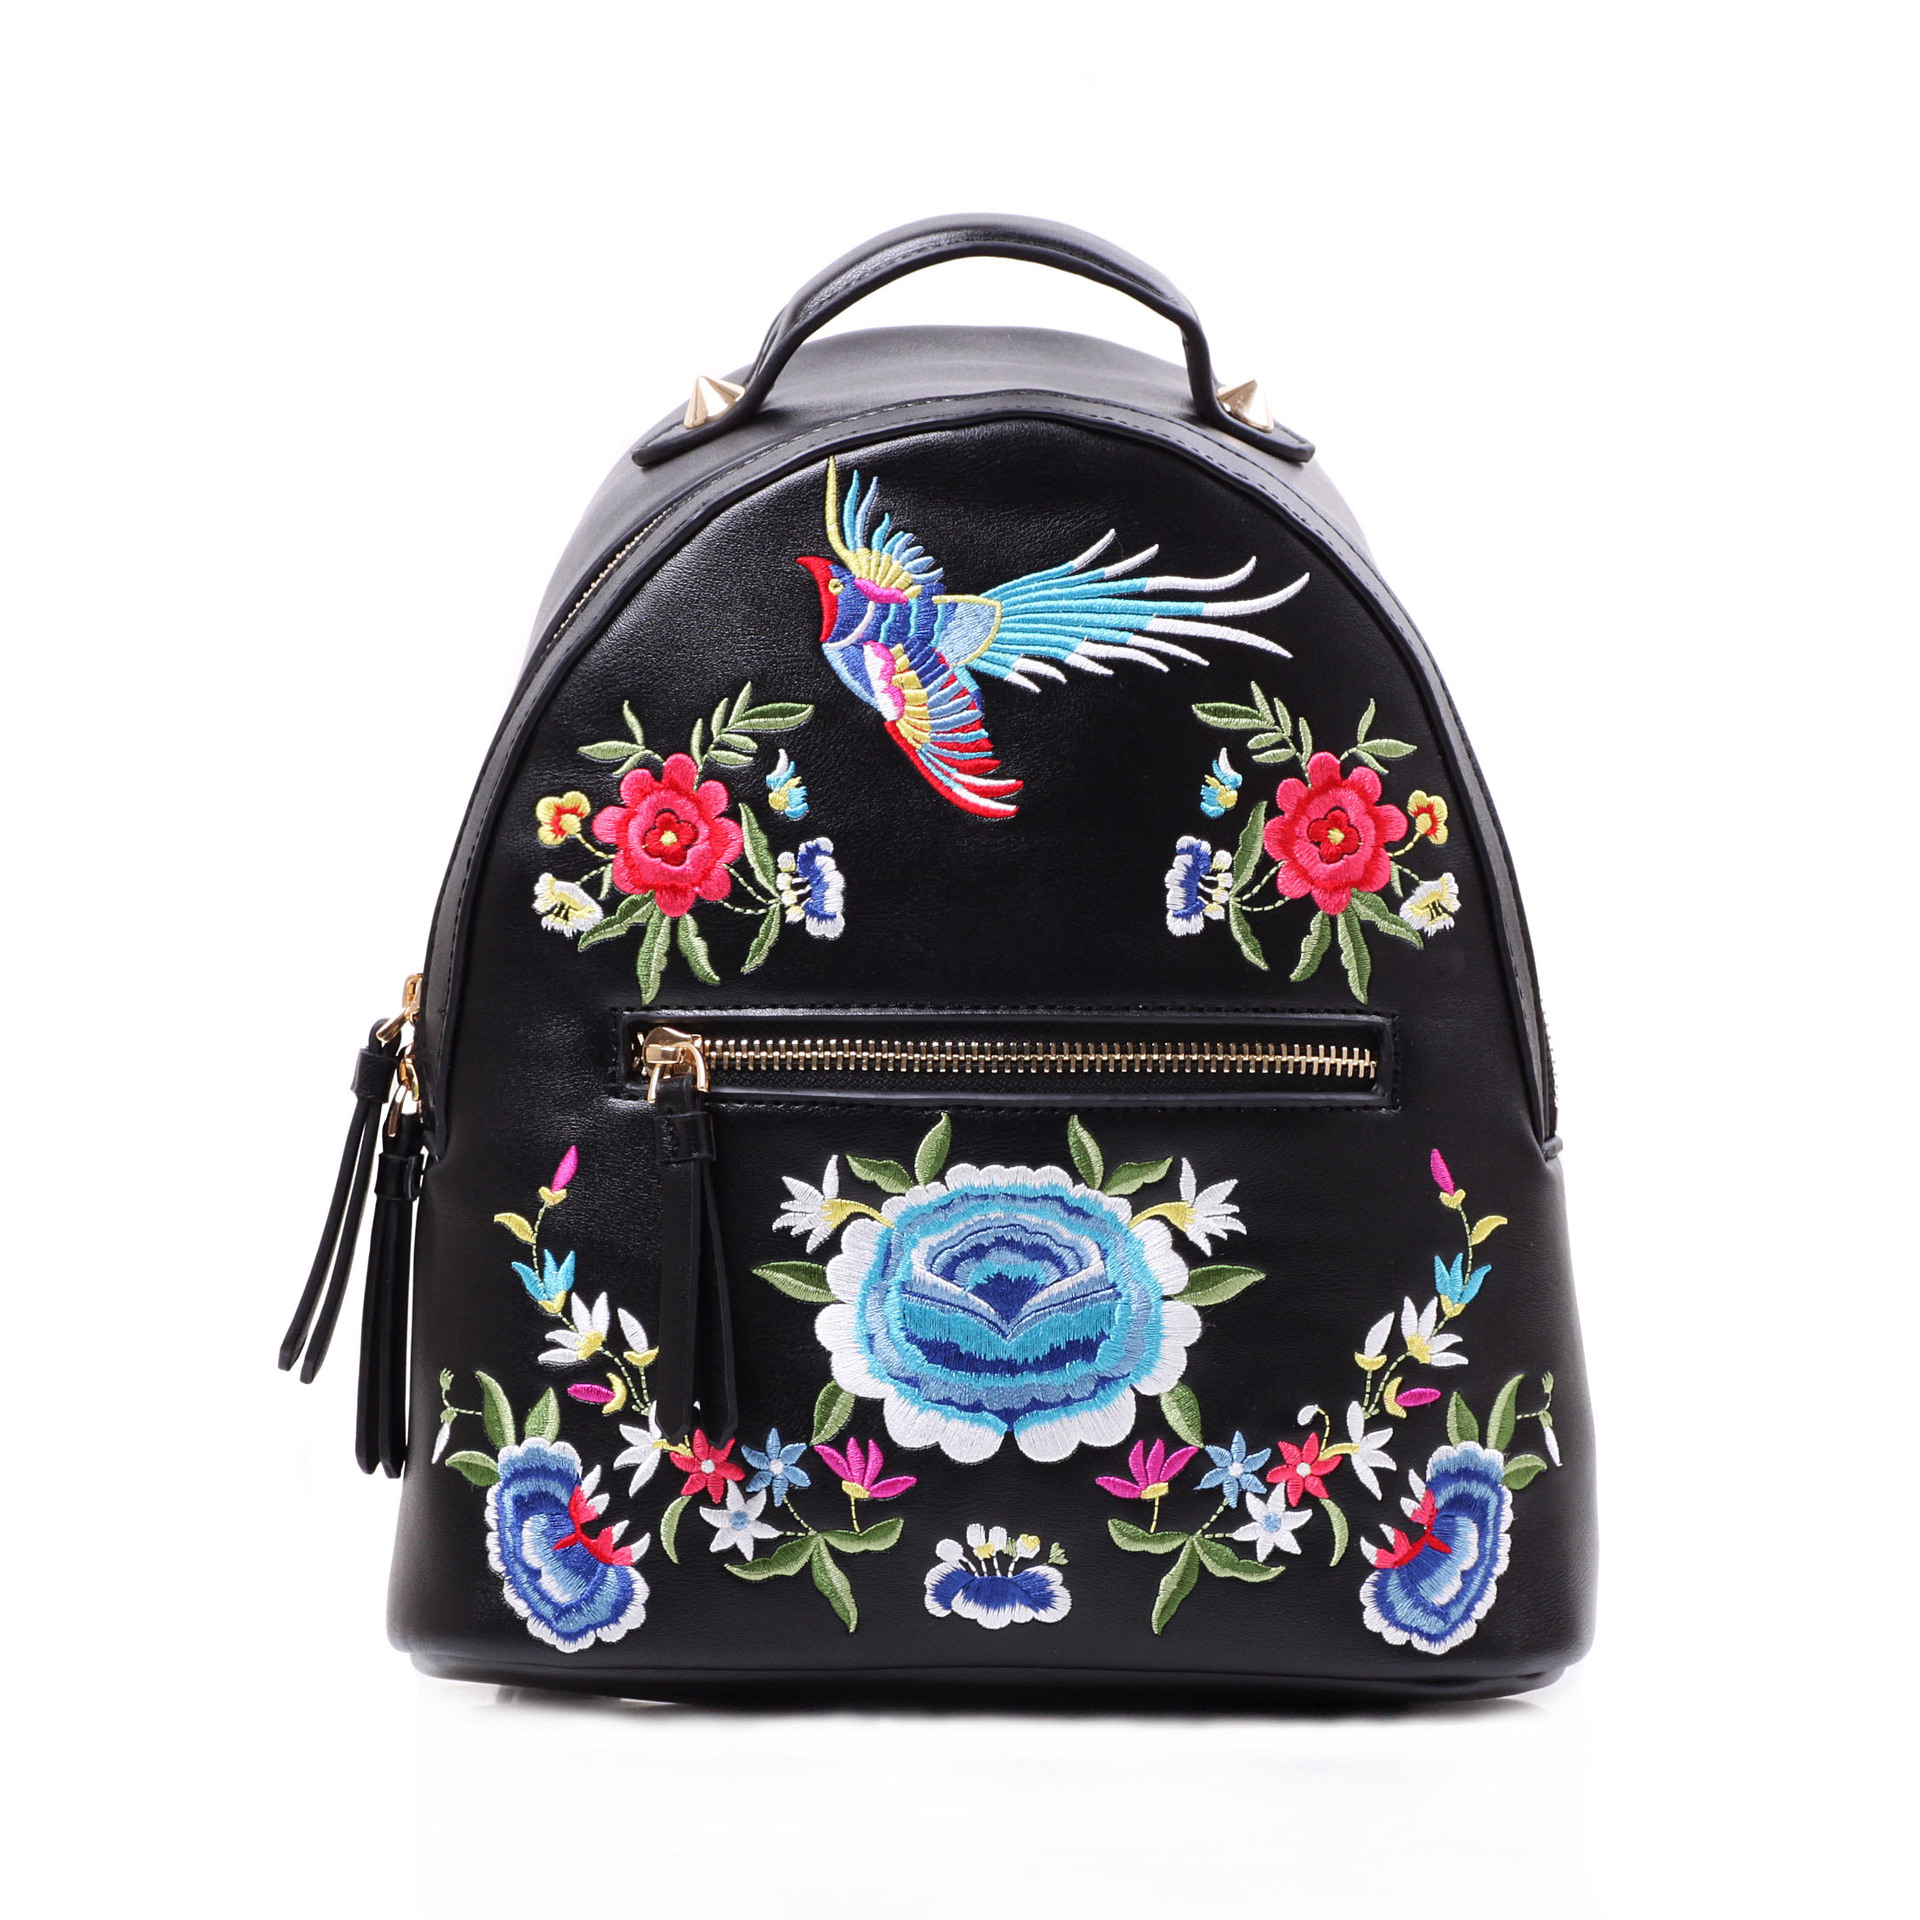 Ethnic Embroidered Backpack for Girls Folk Phoenix Bag Ladies Flower Embroidery Backpack Small Back Pack Womens Casual Daypacks